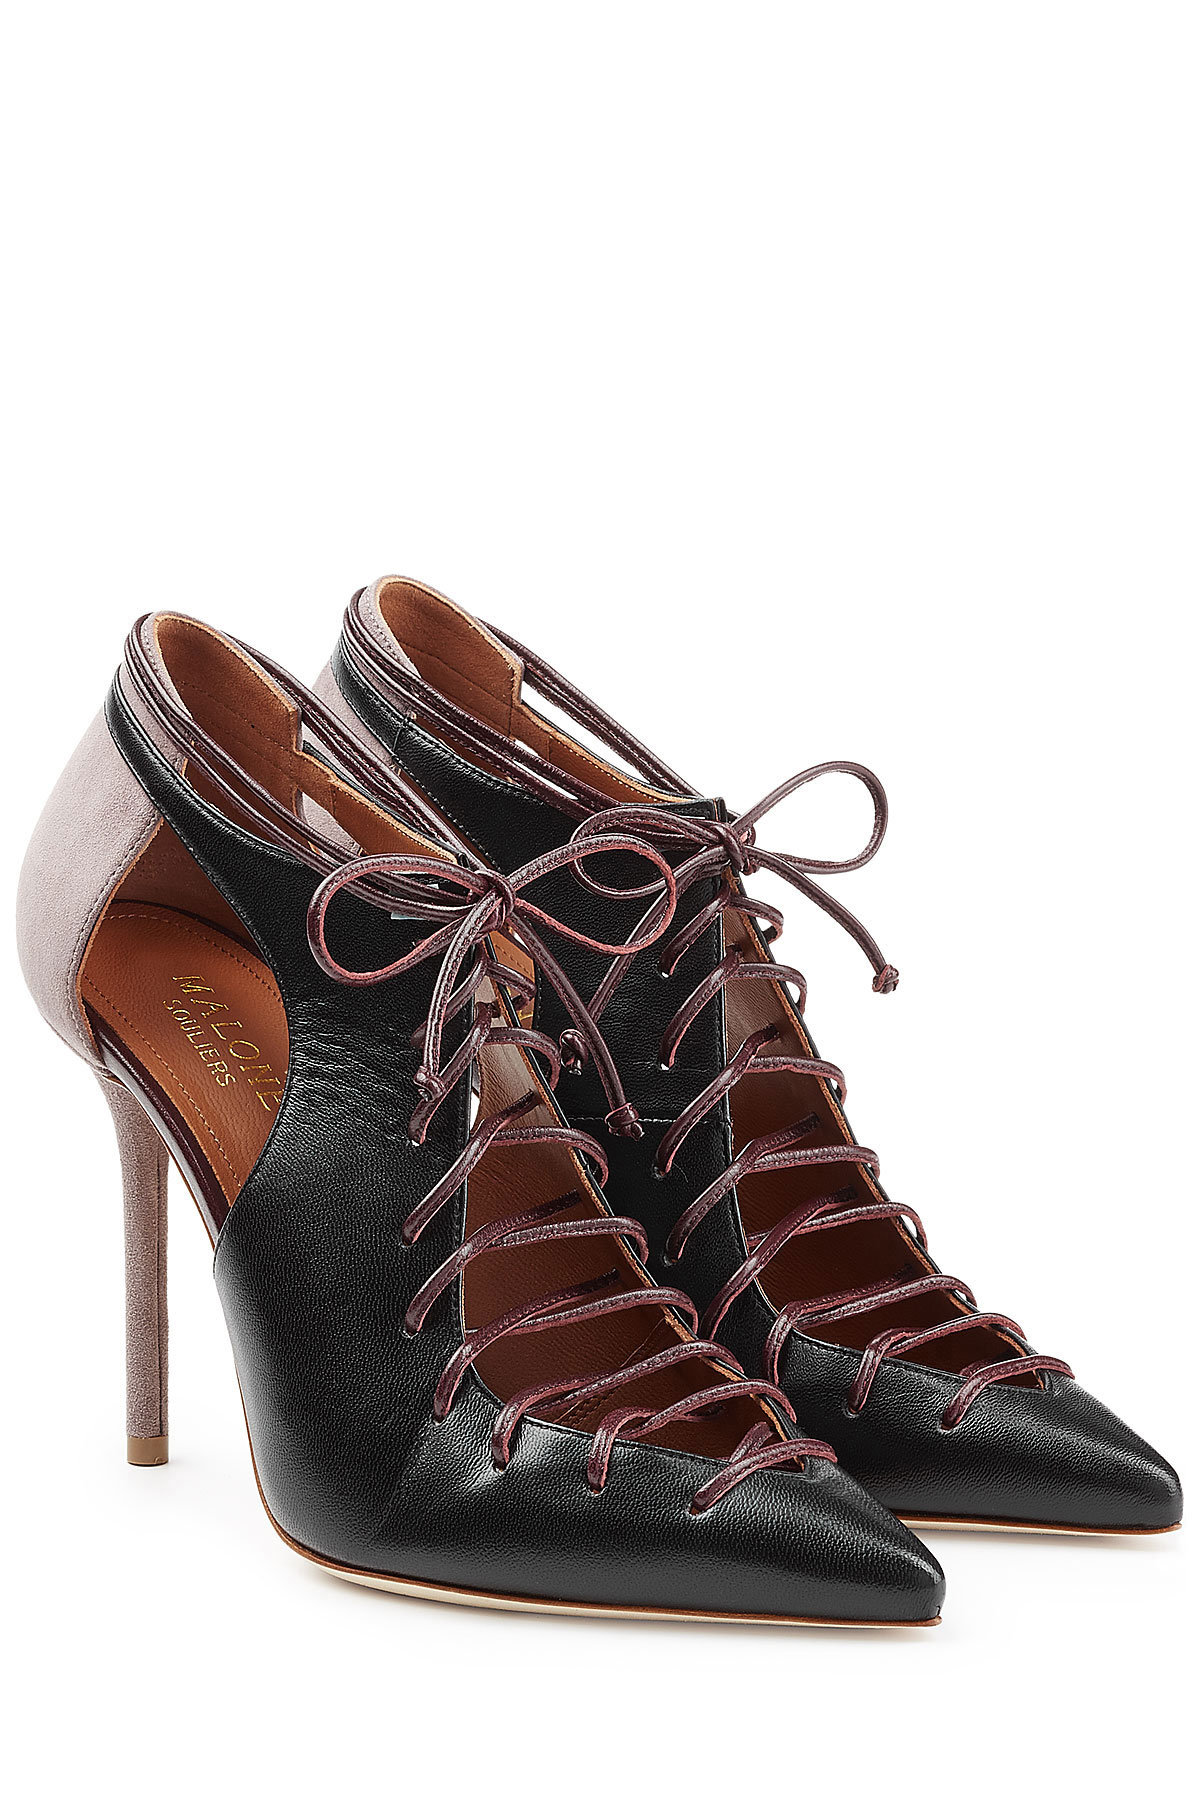 MALONE SOULIERS Suede Pumps with Lace-Up Front Gr. EU 37.5 as9a37